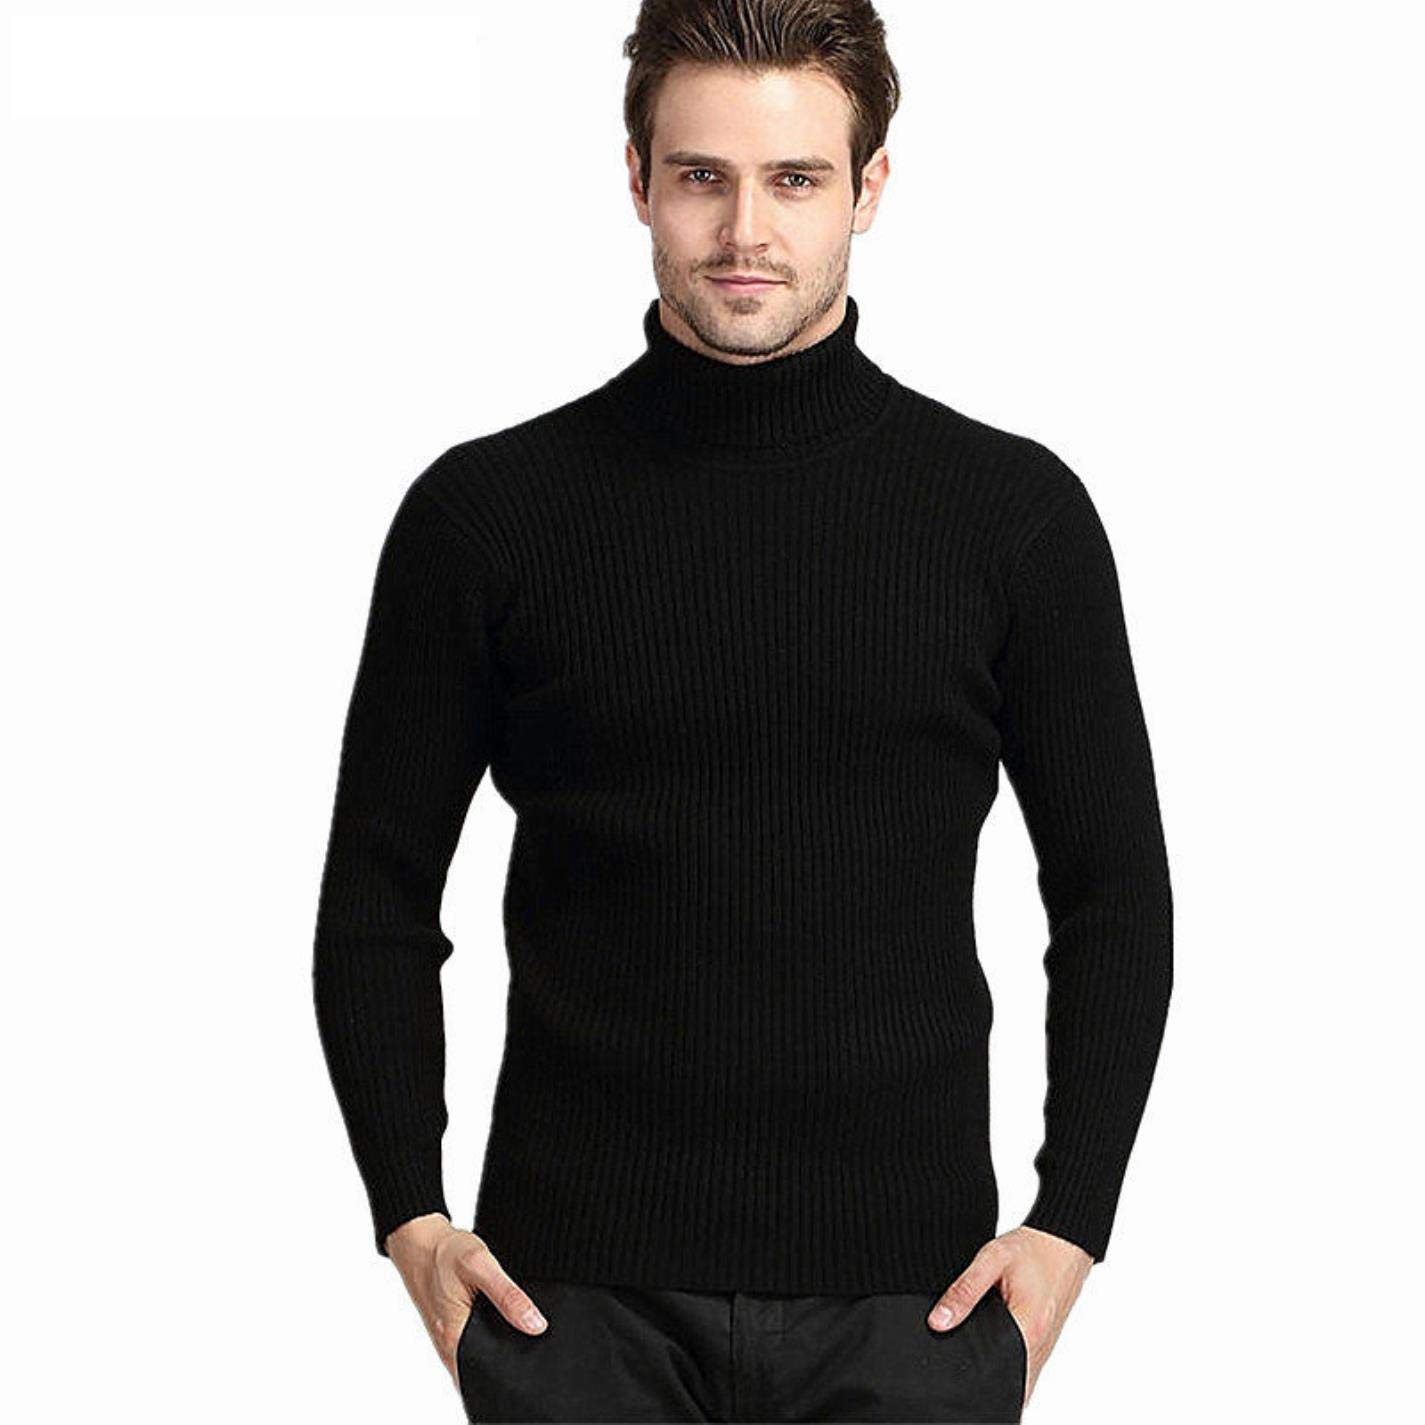 AAUCl Mens Winter Thick Warm Cashmere Sweater Turtleneck Sweaters Slim Fit